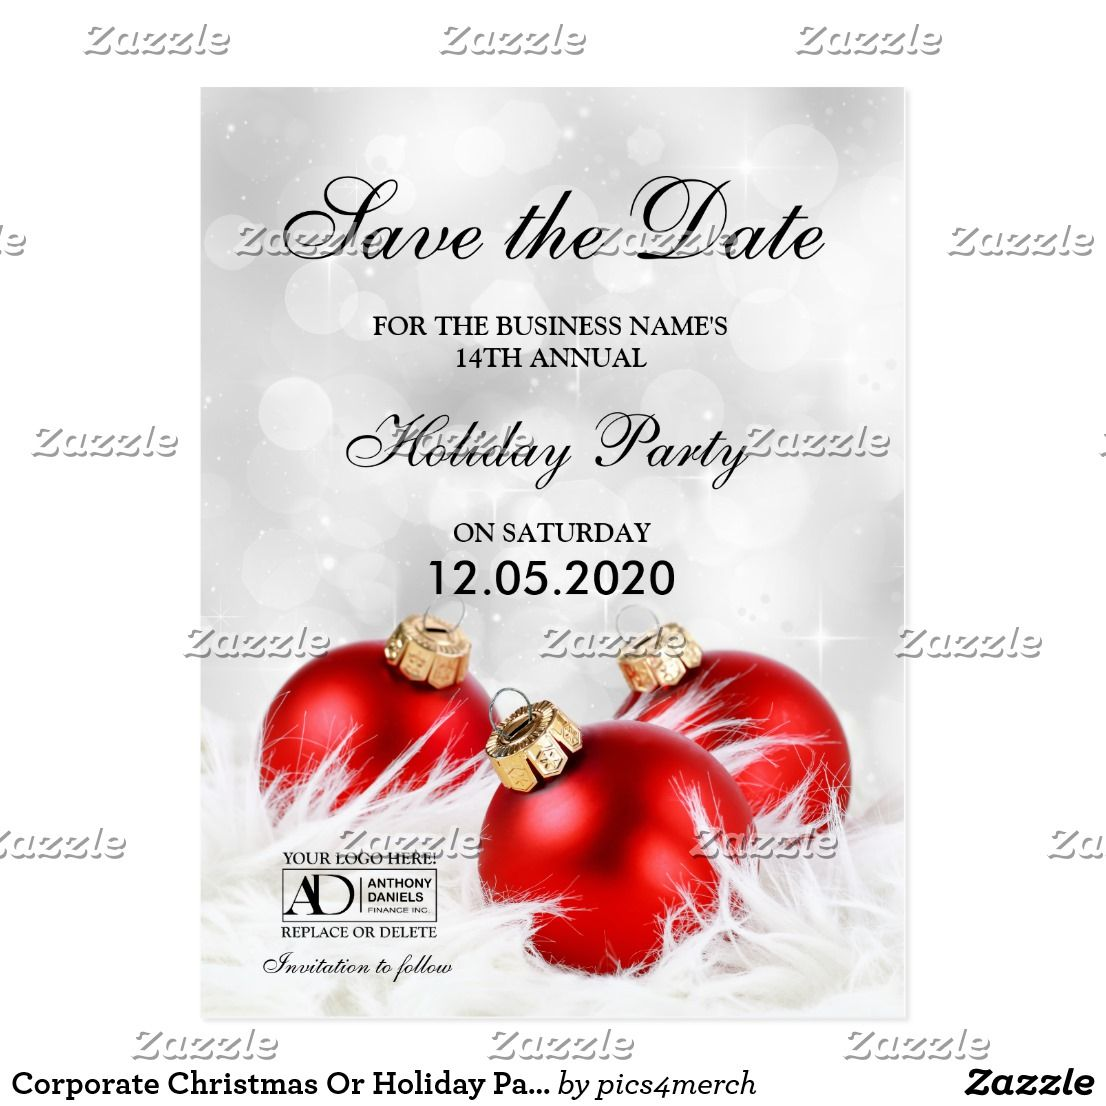 Corporate Christmas Or Holiday Party Save The Date Announcement ...